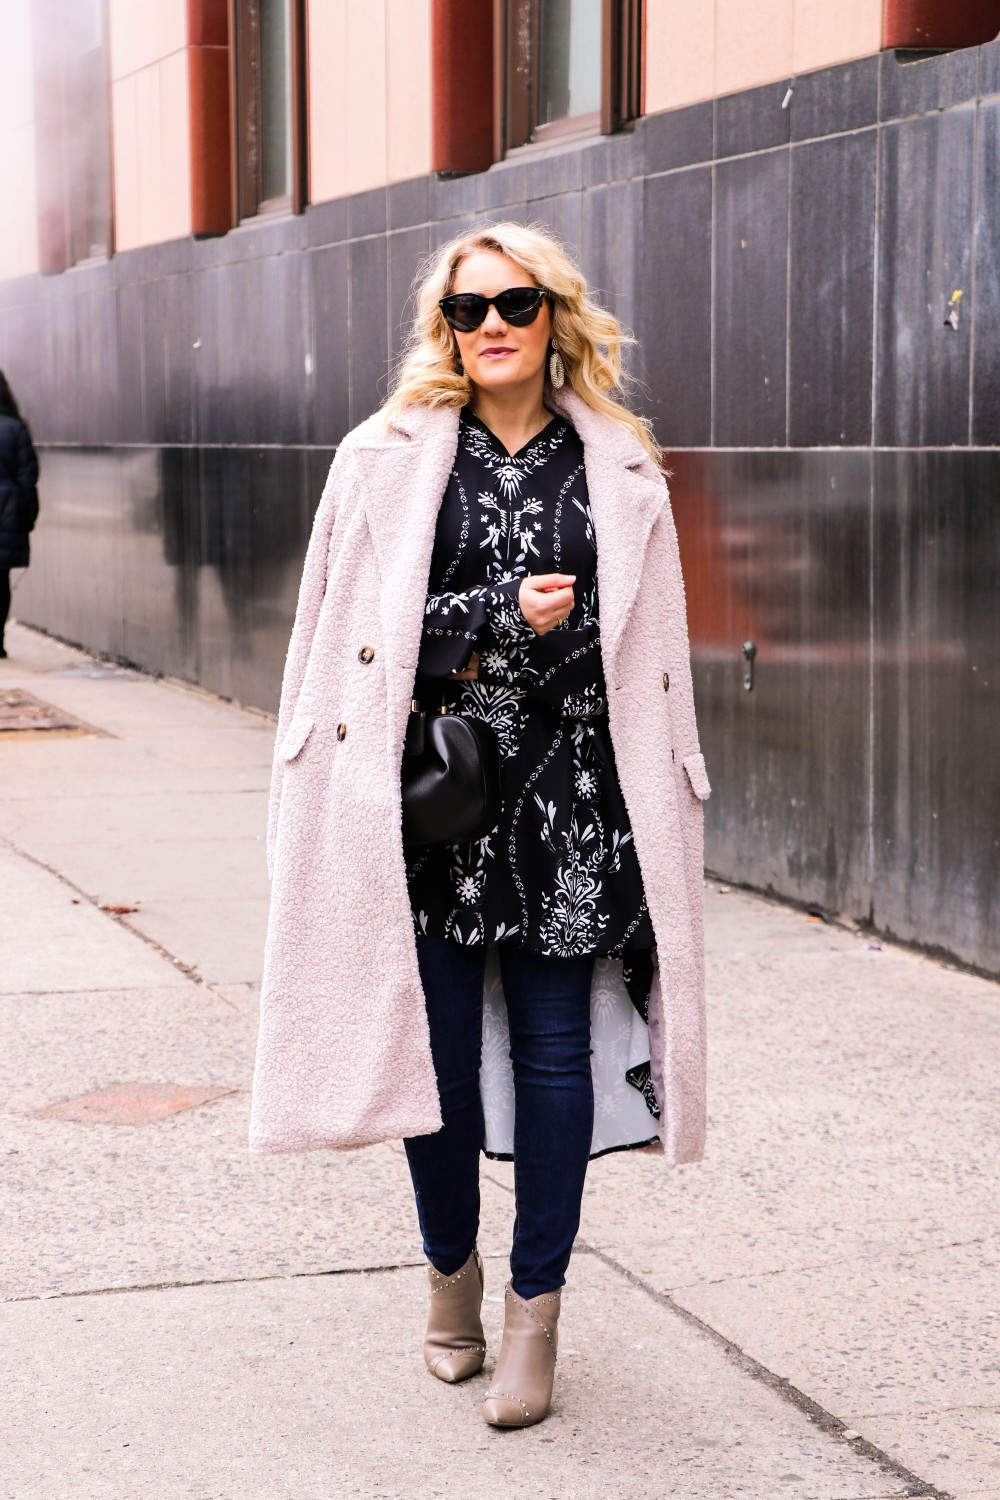 NYFW Street Style Wearing Ruti, Joe's Jeans, Mark Fisher, Gabriella Hearst and a Teddy Coat from VICI. Click on the photo to check out the post! Have Need Want #NYFW #NYFWstreetstyle #streetstyle #Ruti